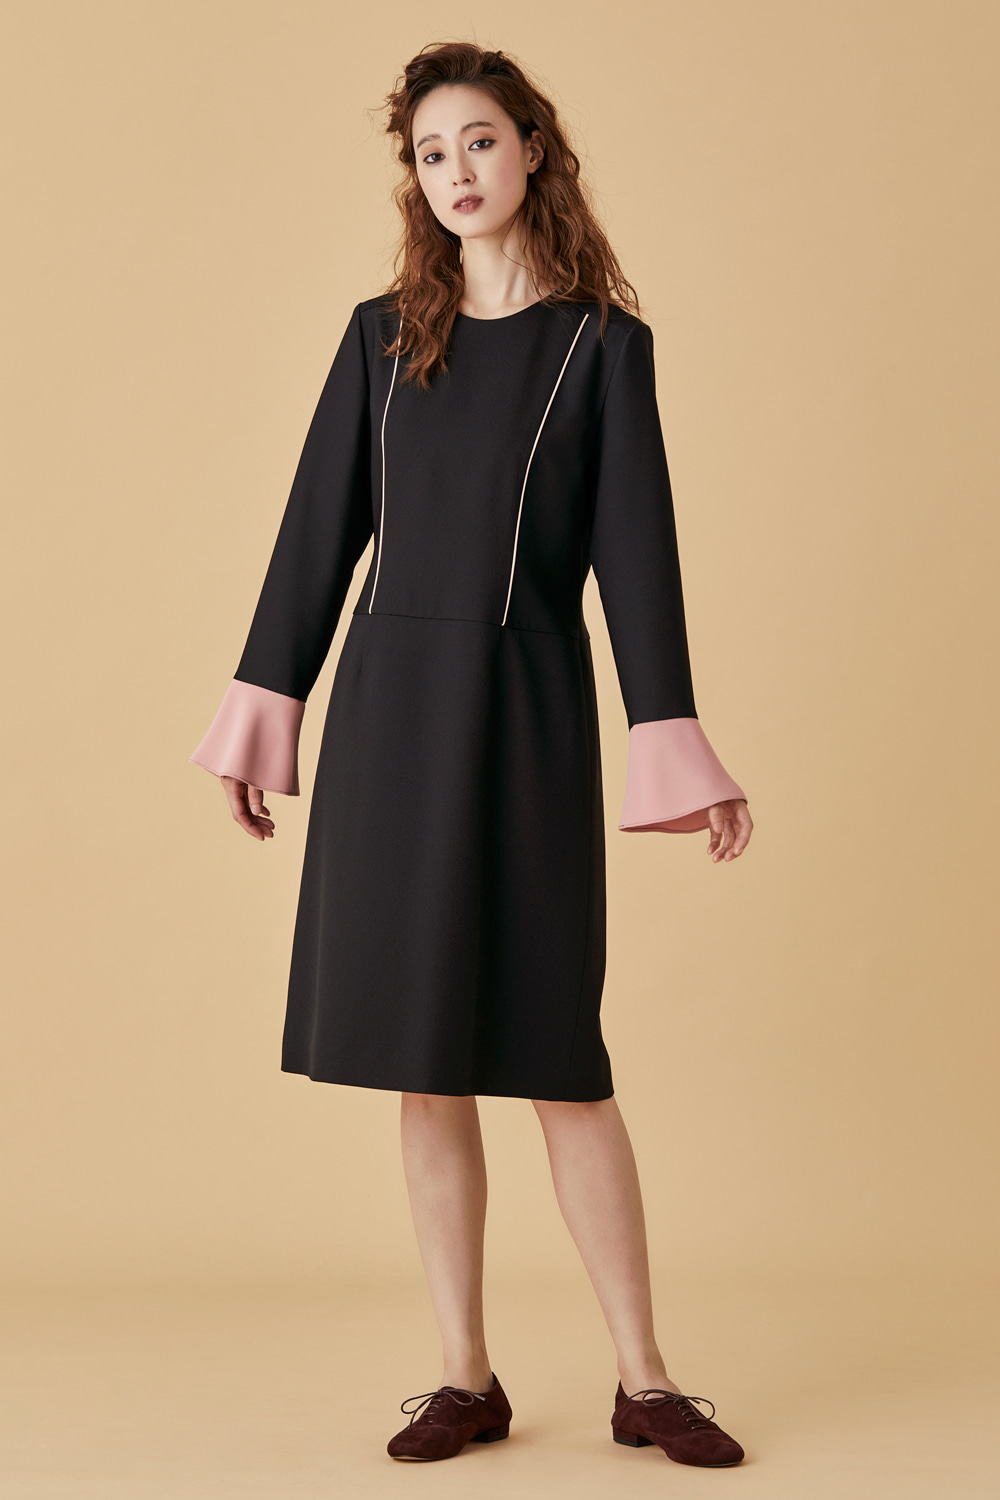 Trumpet Sleeve Black Dress